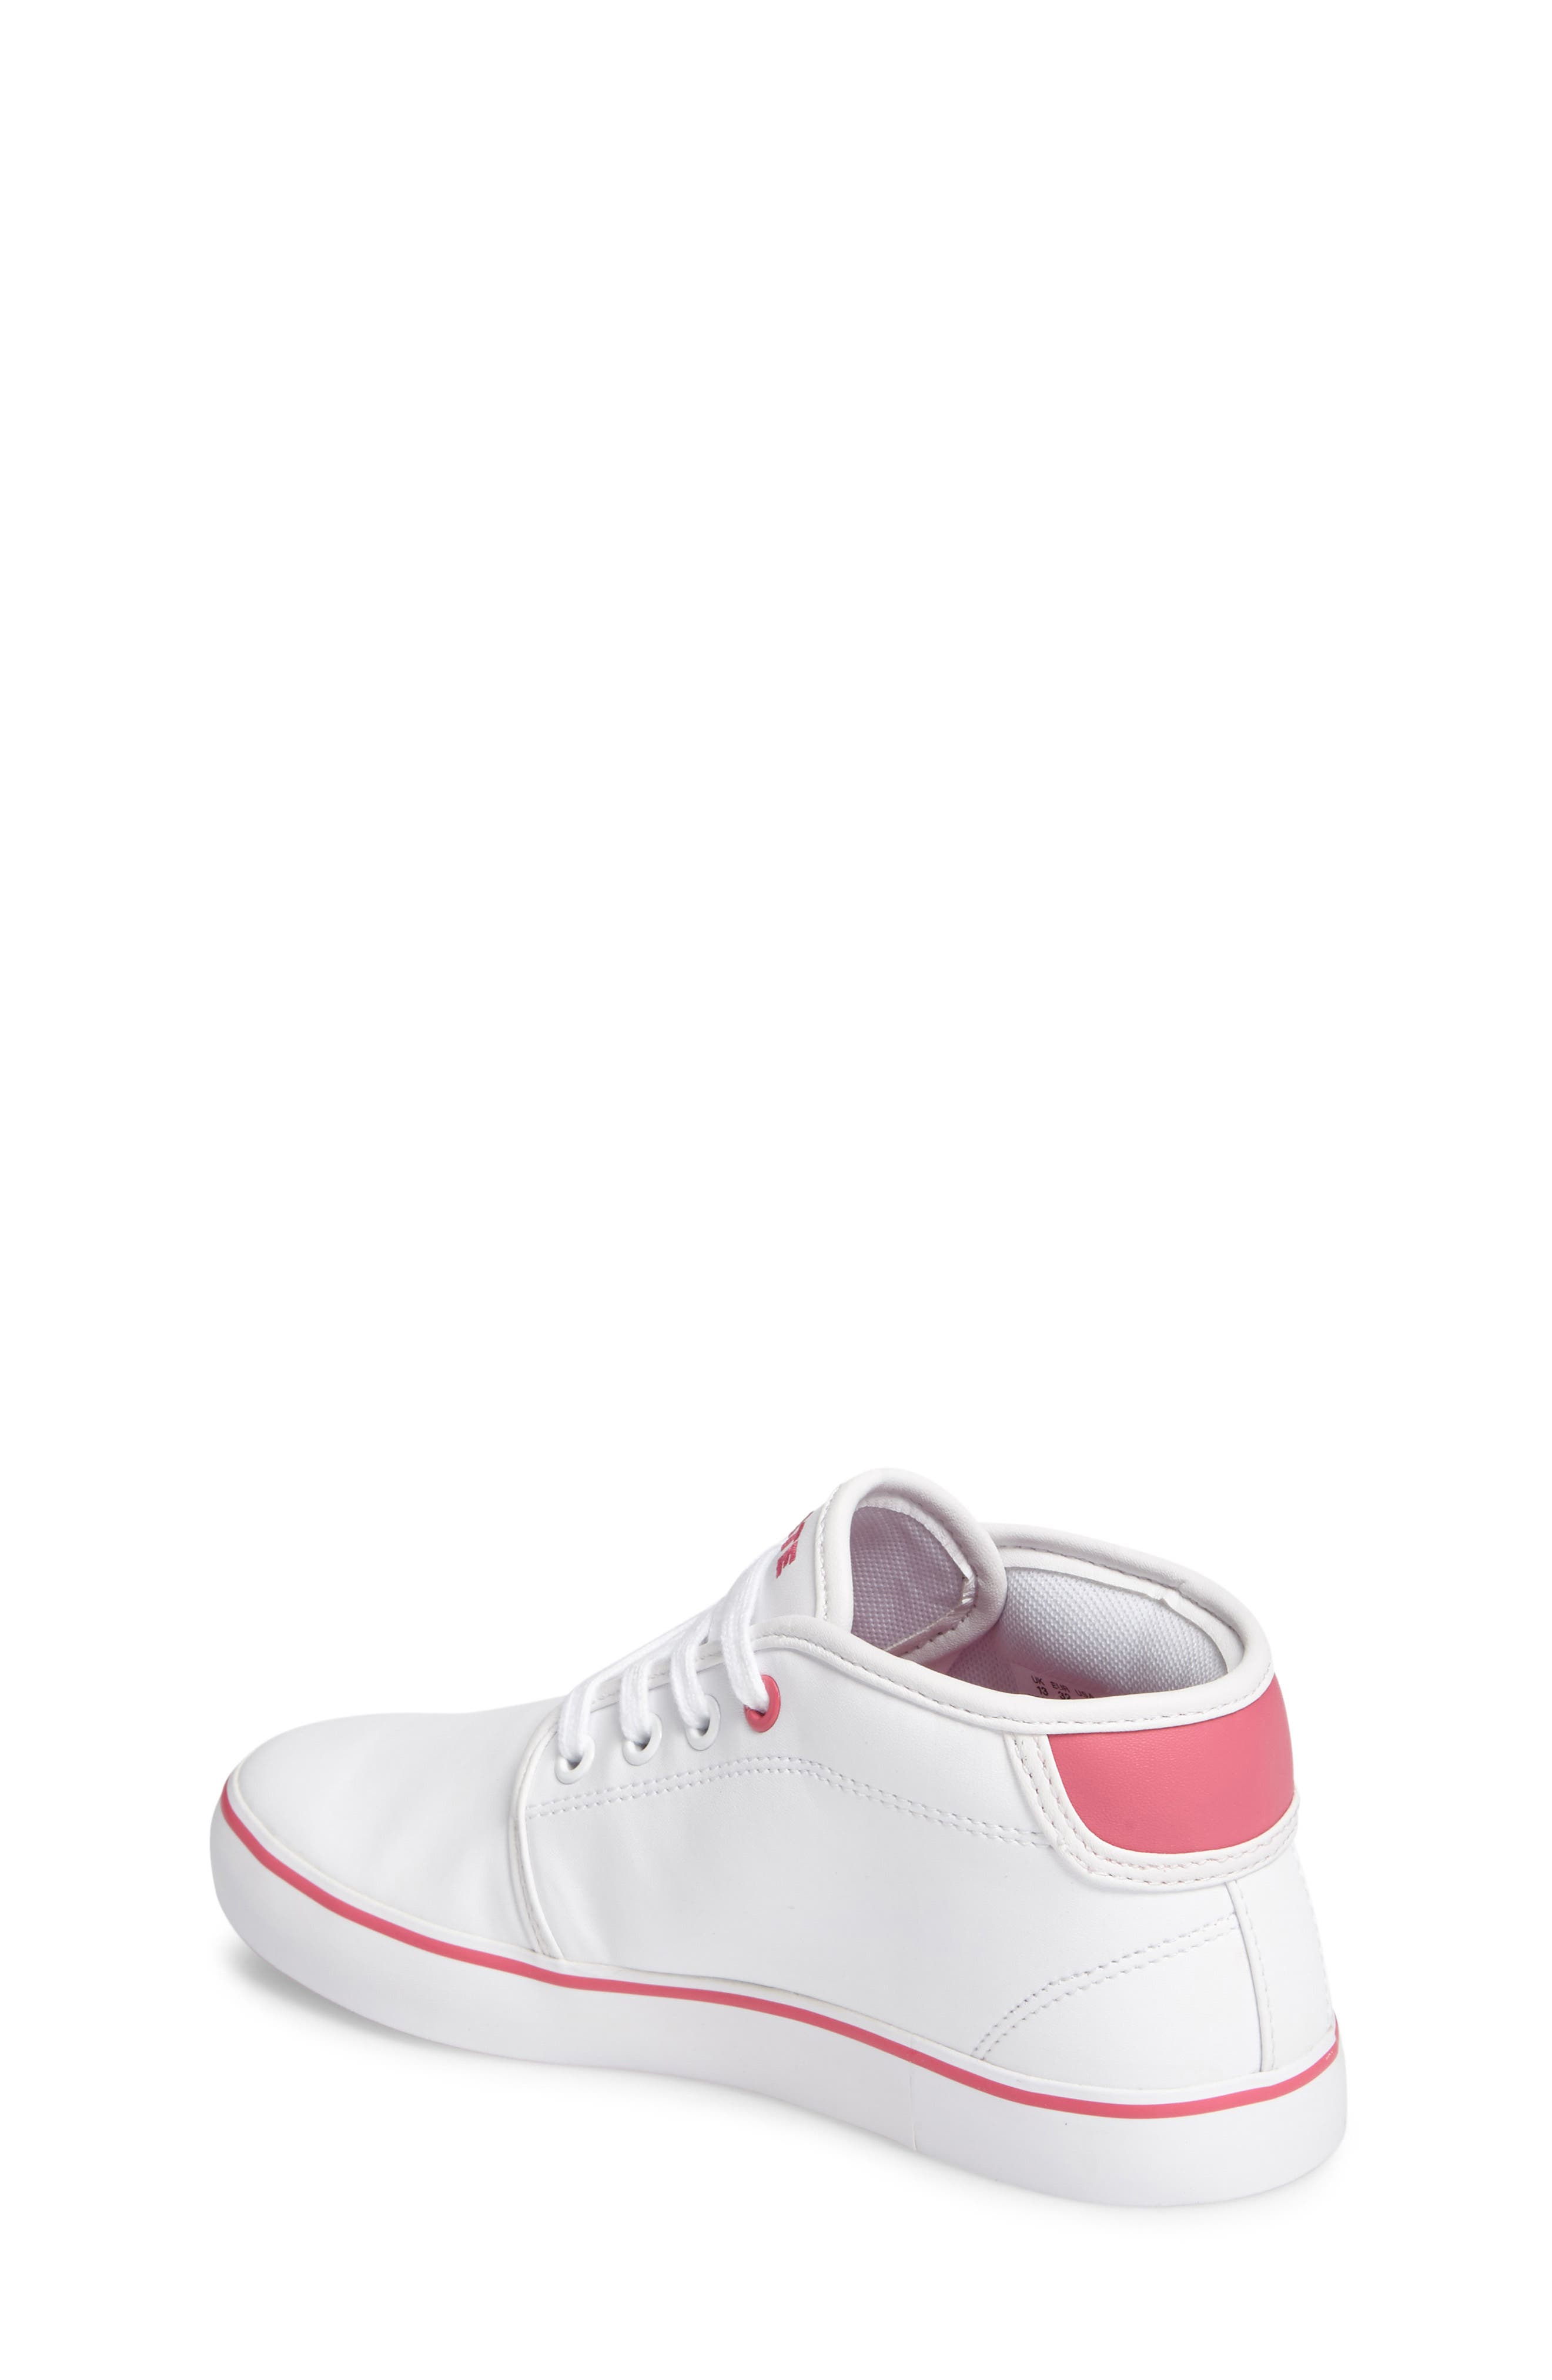 Ampthill Mid-Top Sneaker,                             Alternate thumbnail 2, color,                             161